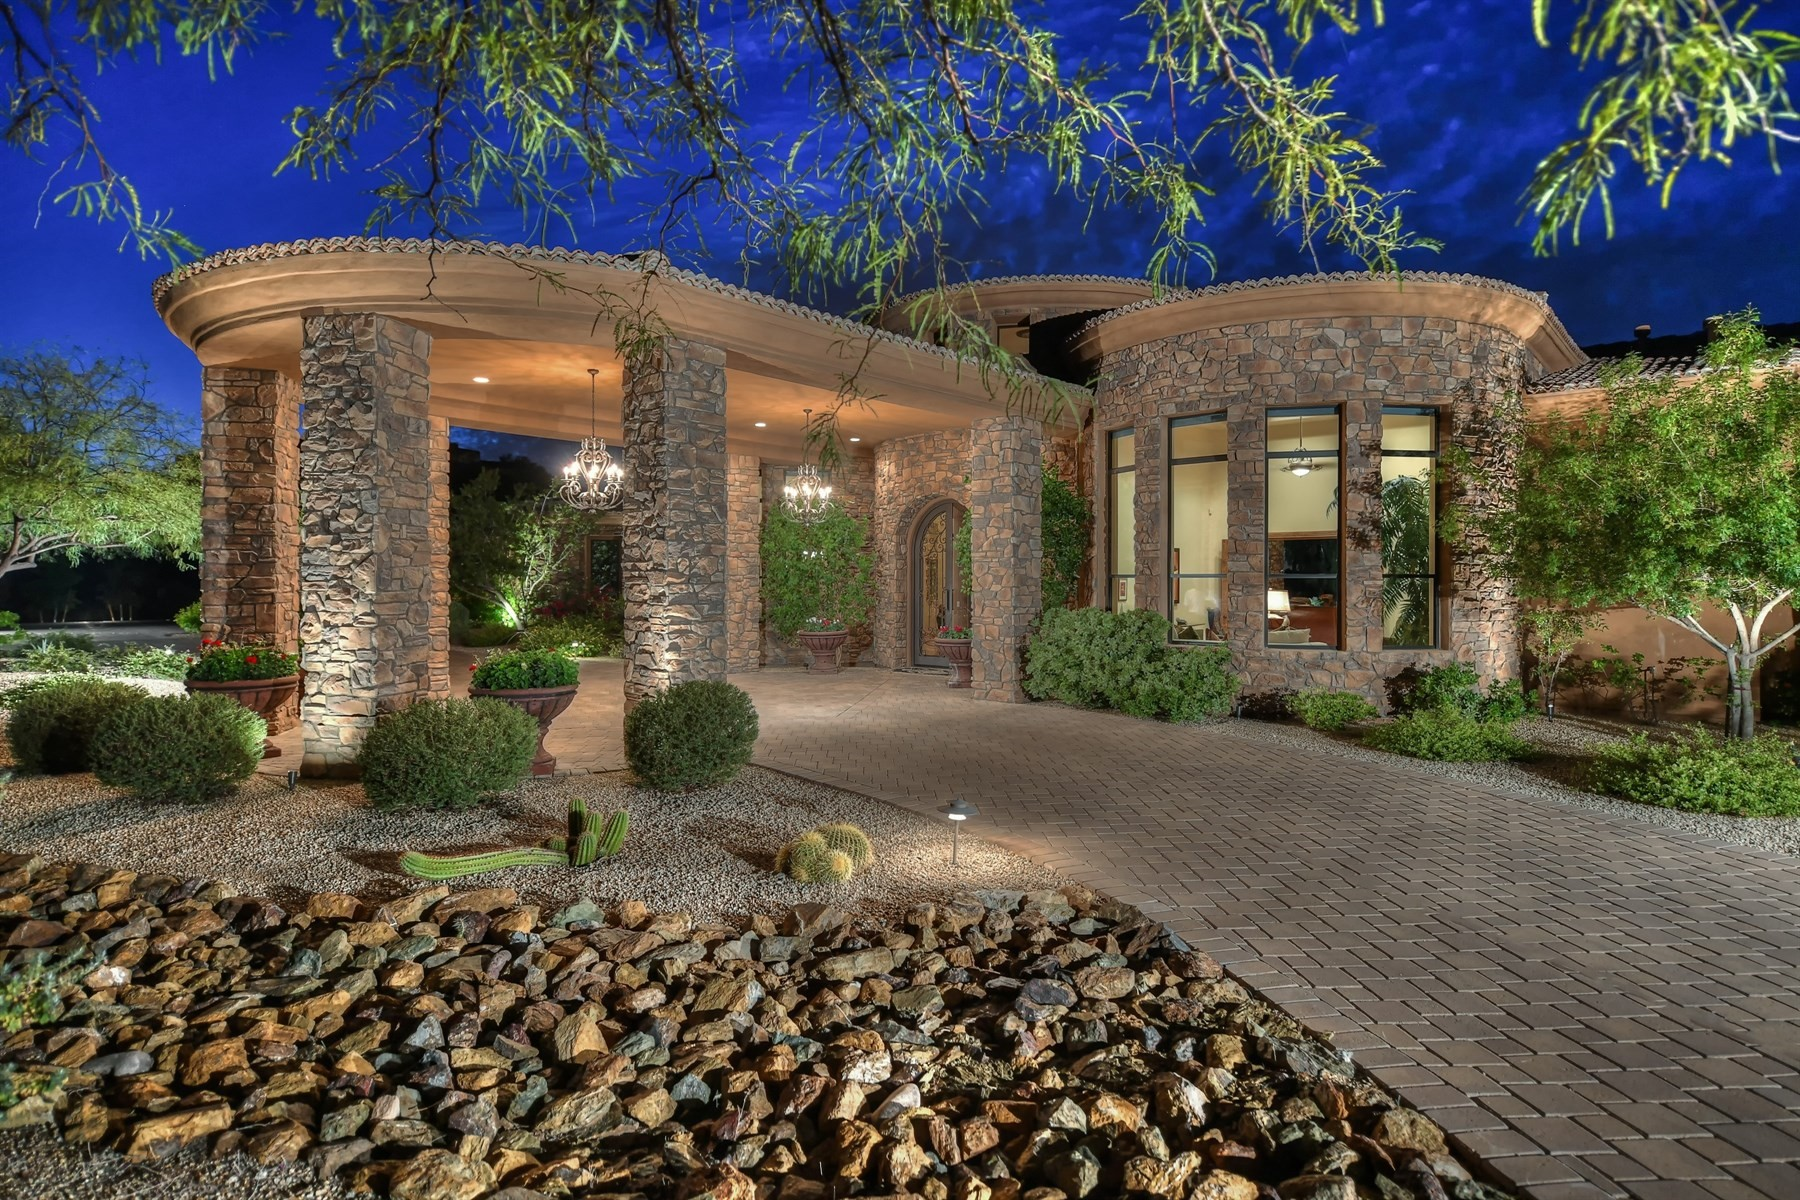 Single Family Home for Sale at Exclusive Pinnacle Vista gated enclave 11386 E Hedgehog Pl Scottsdale, Arizona, 85262 United States